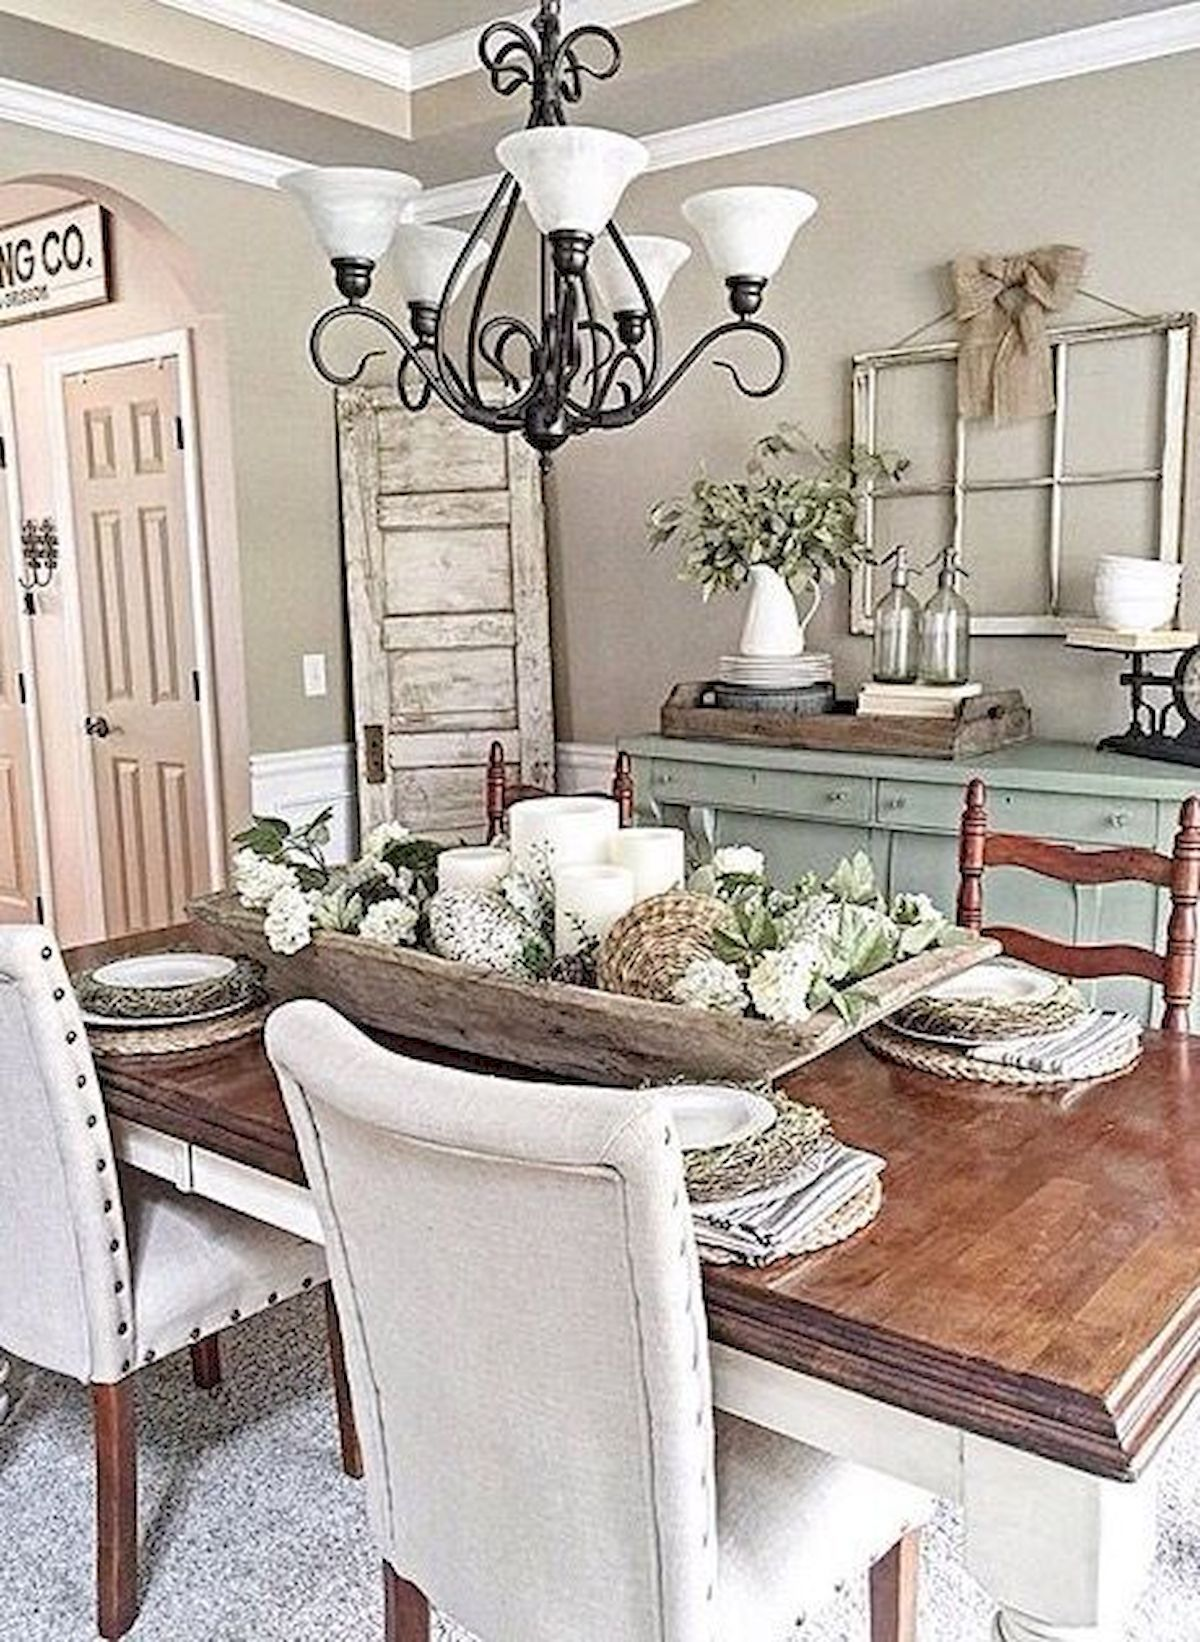 160+ Awesome Formal Design Ideas For Your Dining Room ... on Farmhouse Dining Room Curtain Ideas  id=76018